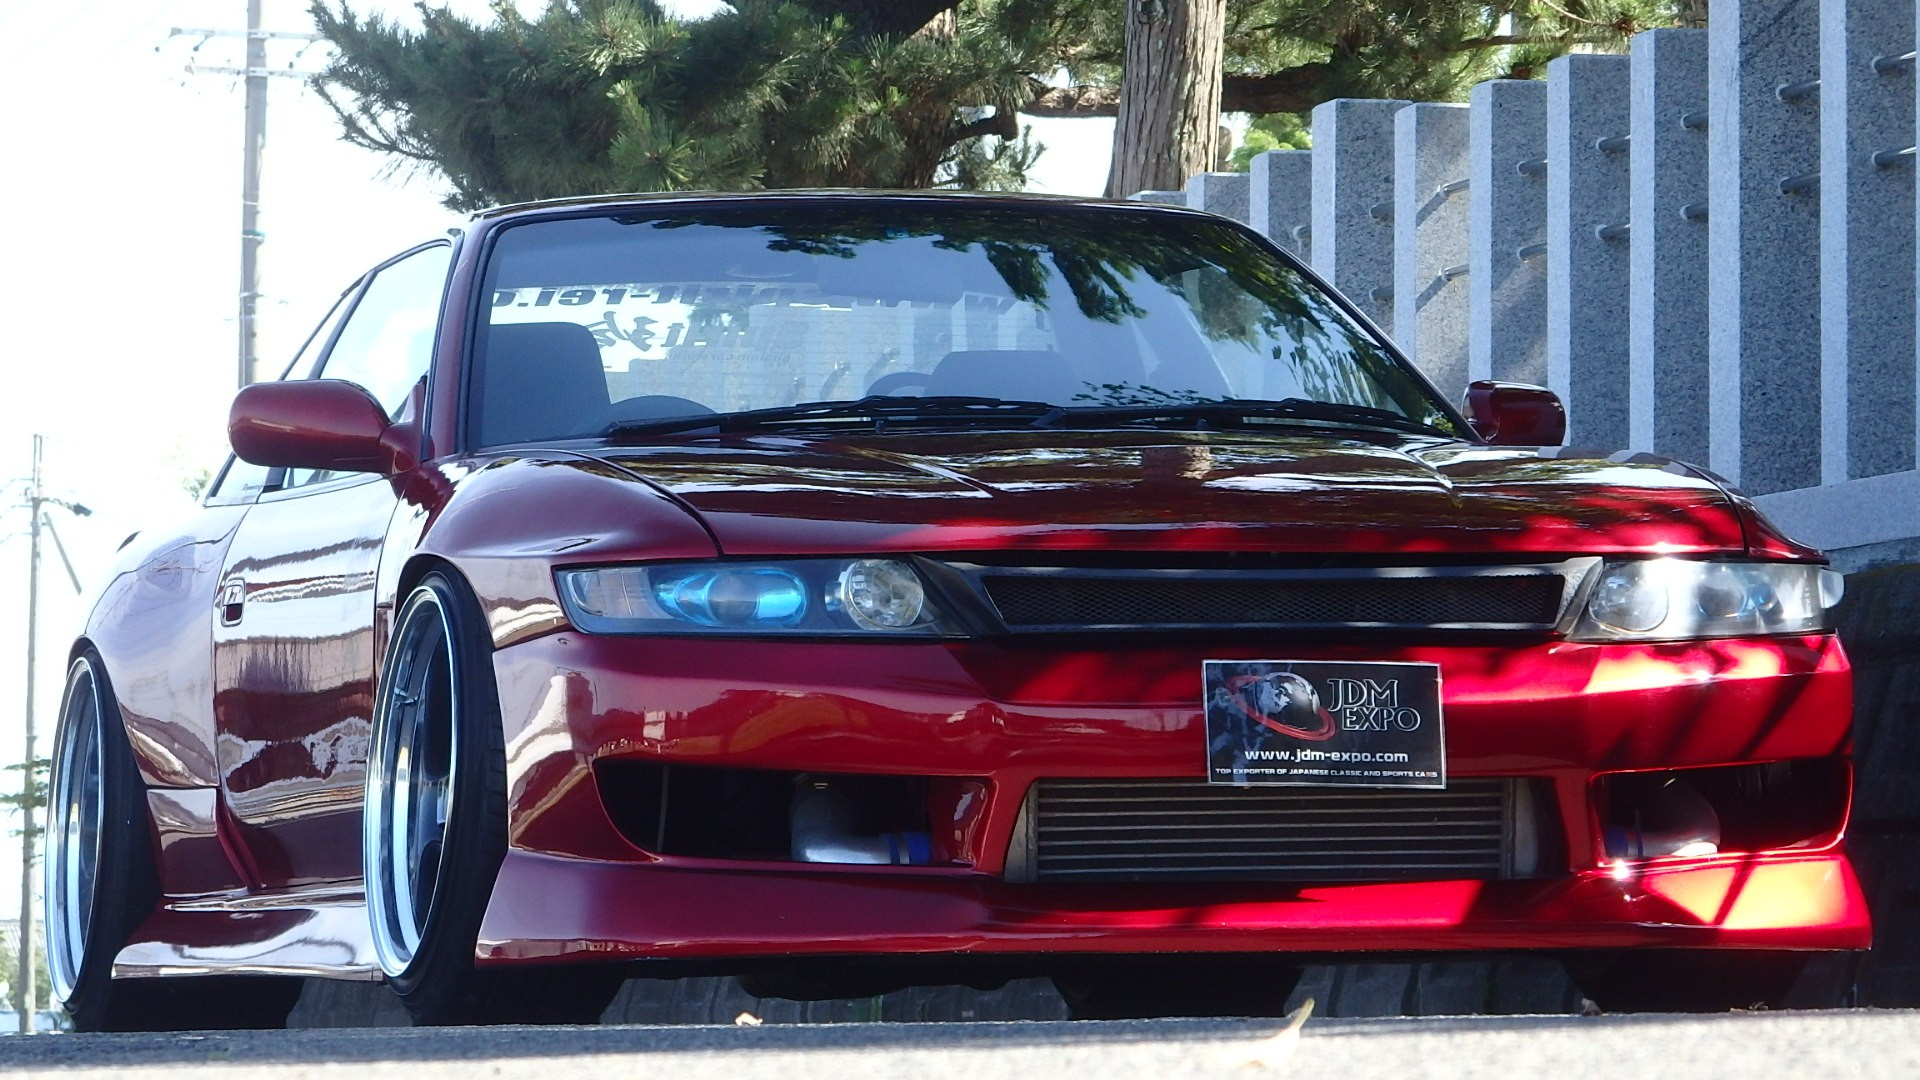 Nissan Skyline Gtr For Sale >> Nissan Silvia S13 for sale Import JDM cars to USA Canada UK Australia